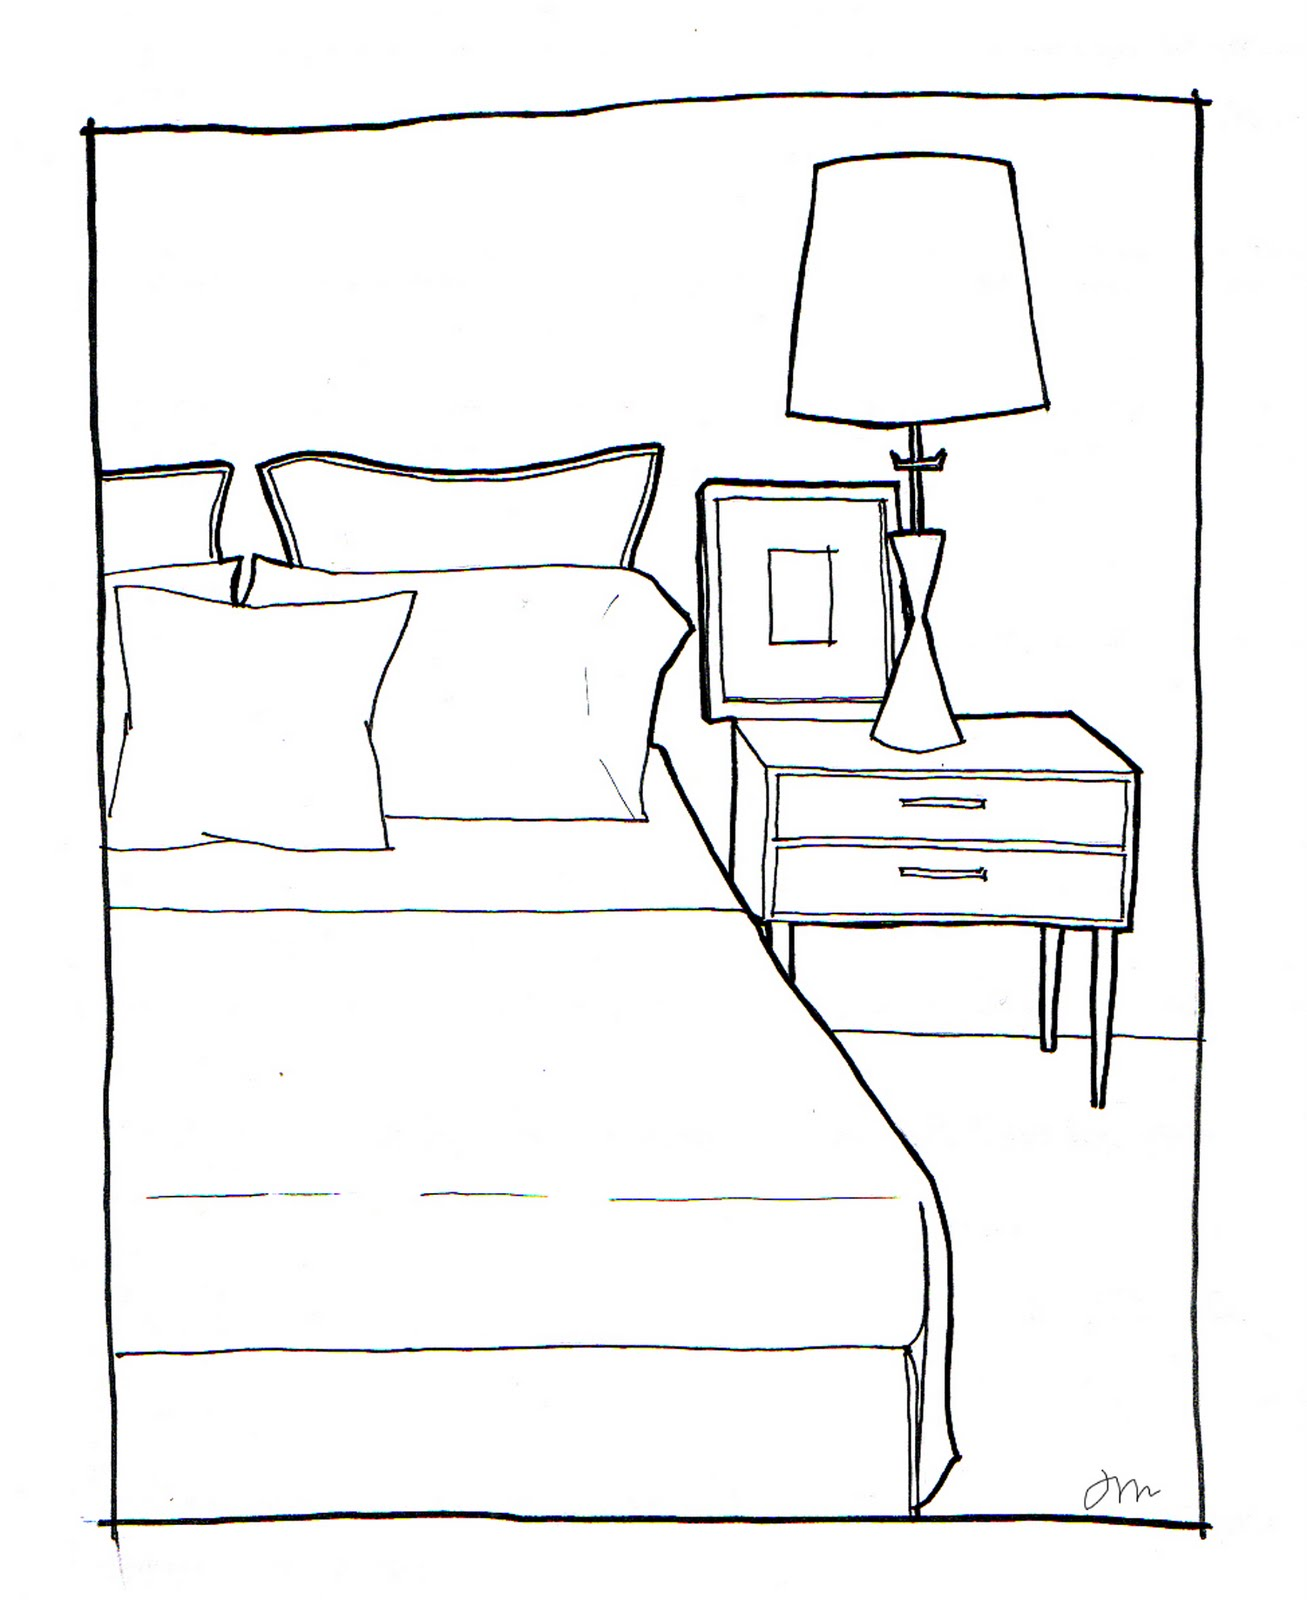 rachel may designs bedroom sketch